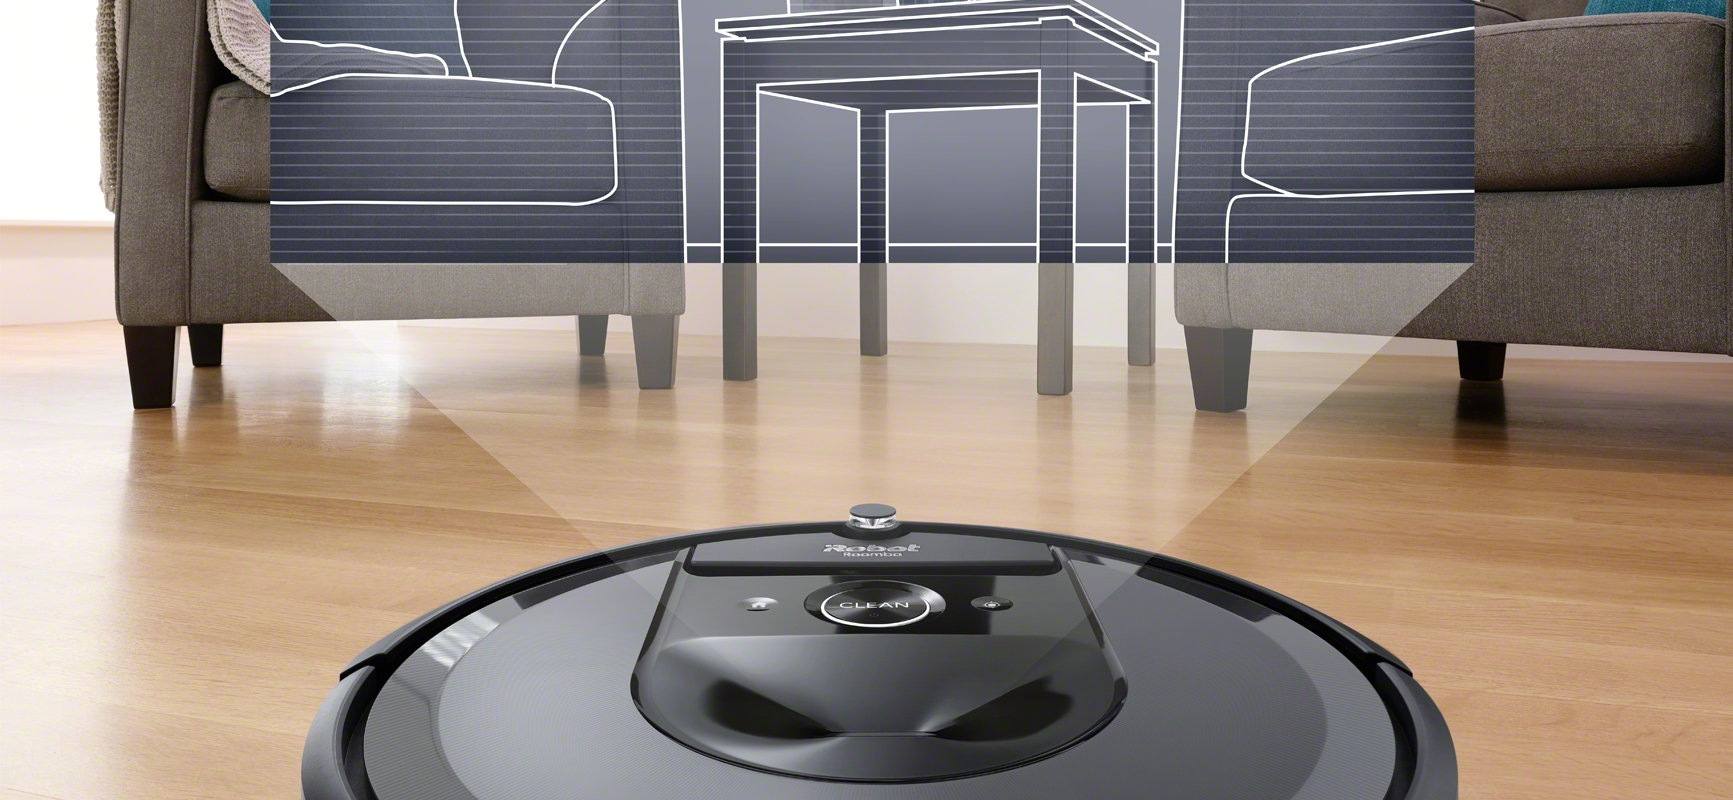 irobot roomba mapping